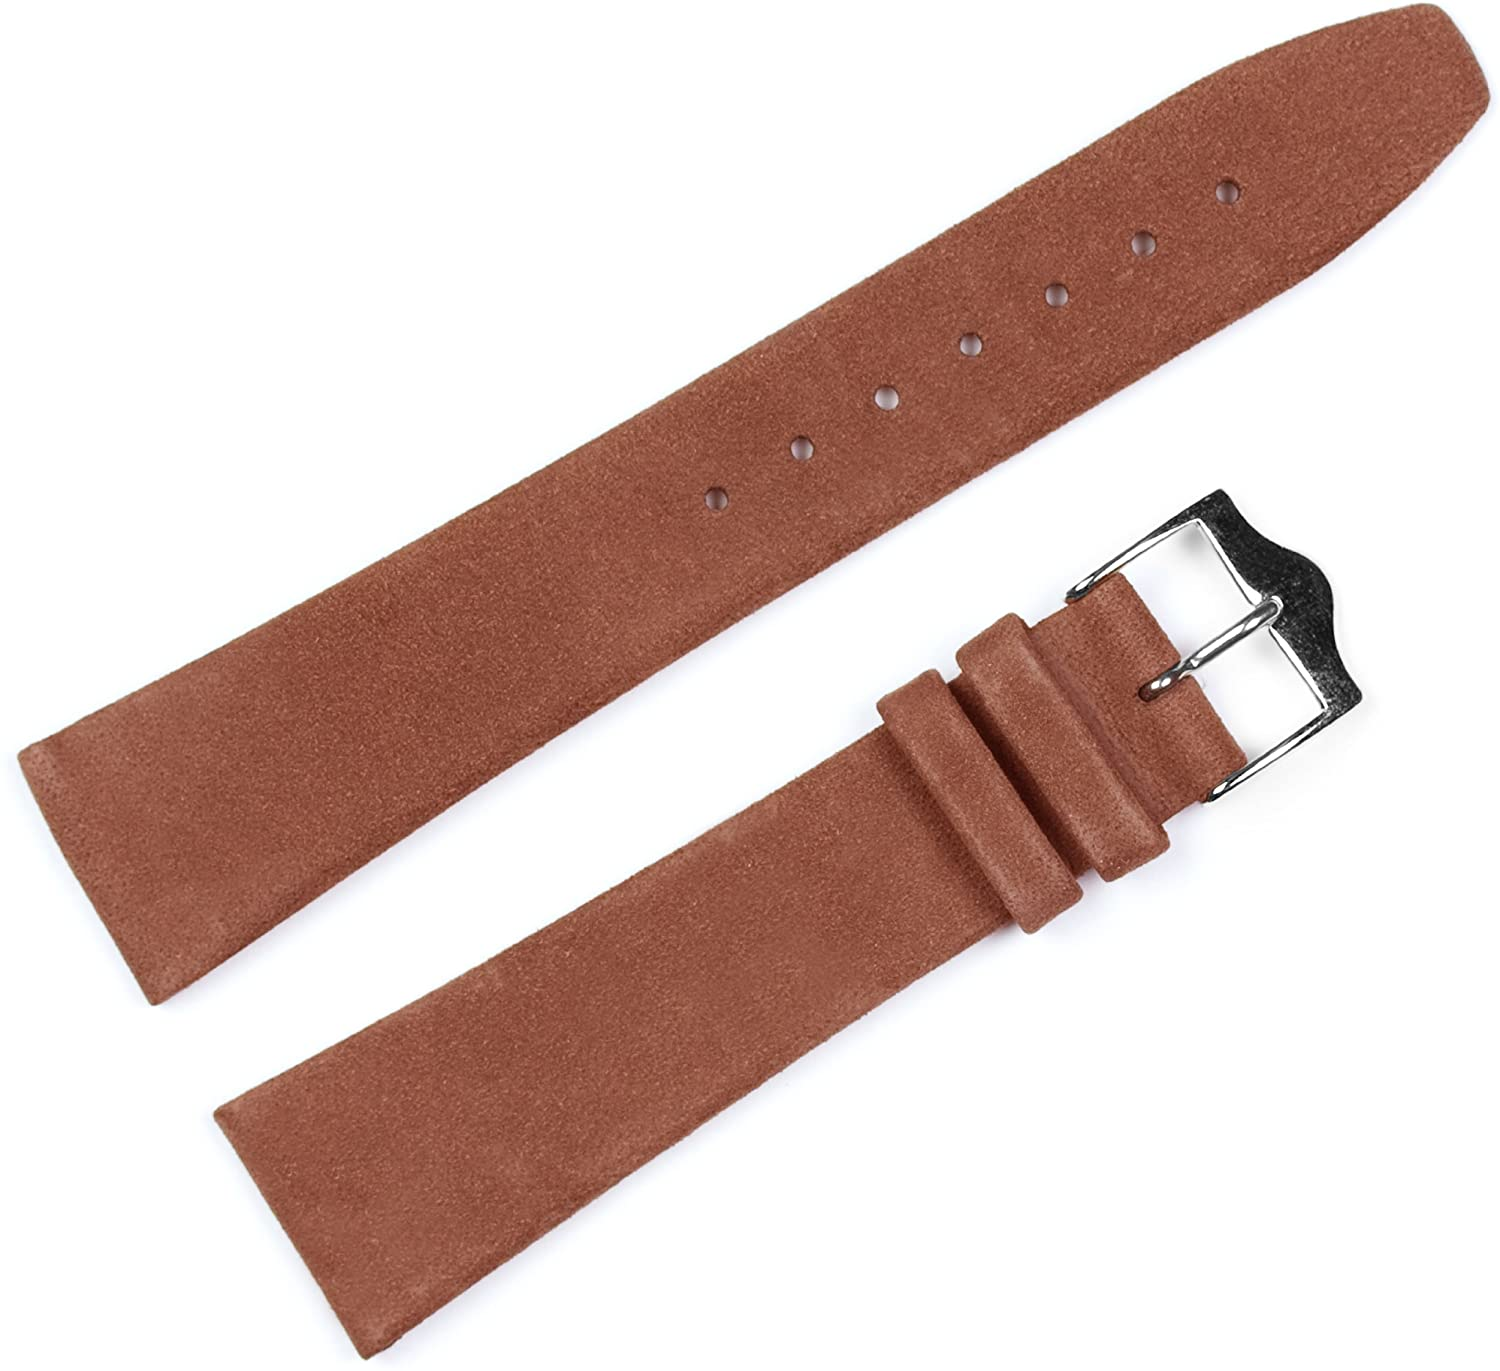 Suede Leather Watch Band - Choice of Color - (Black or Havana) & Width - (12, 14, 16, 17, 18, 19, or 20mm)